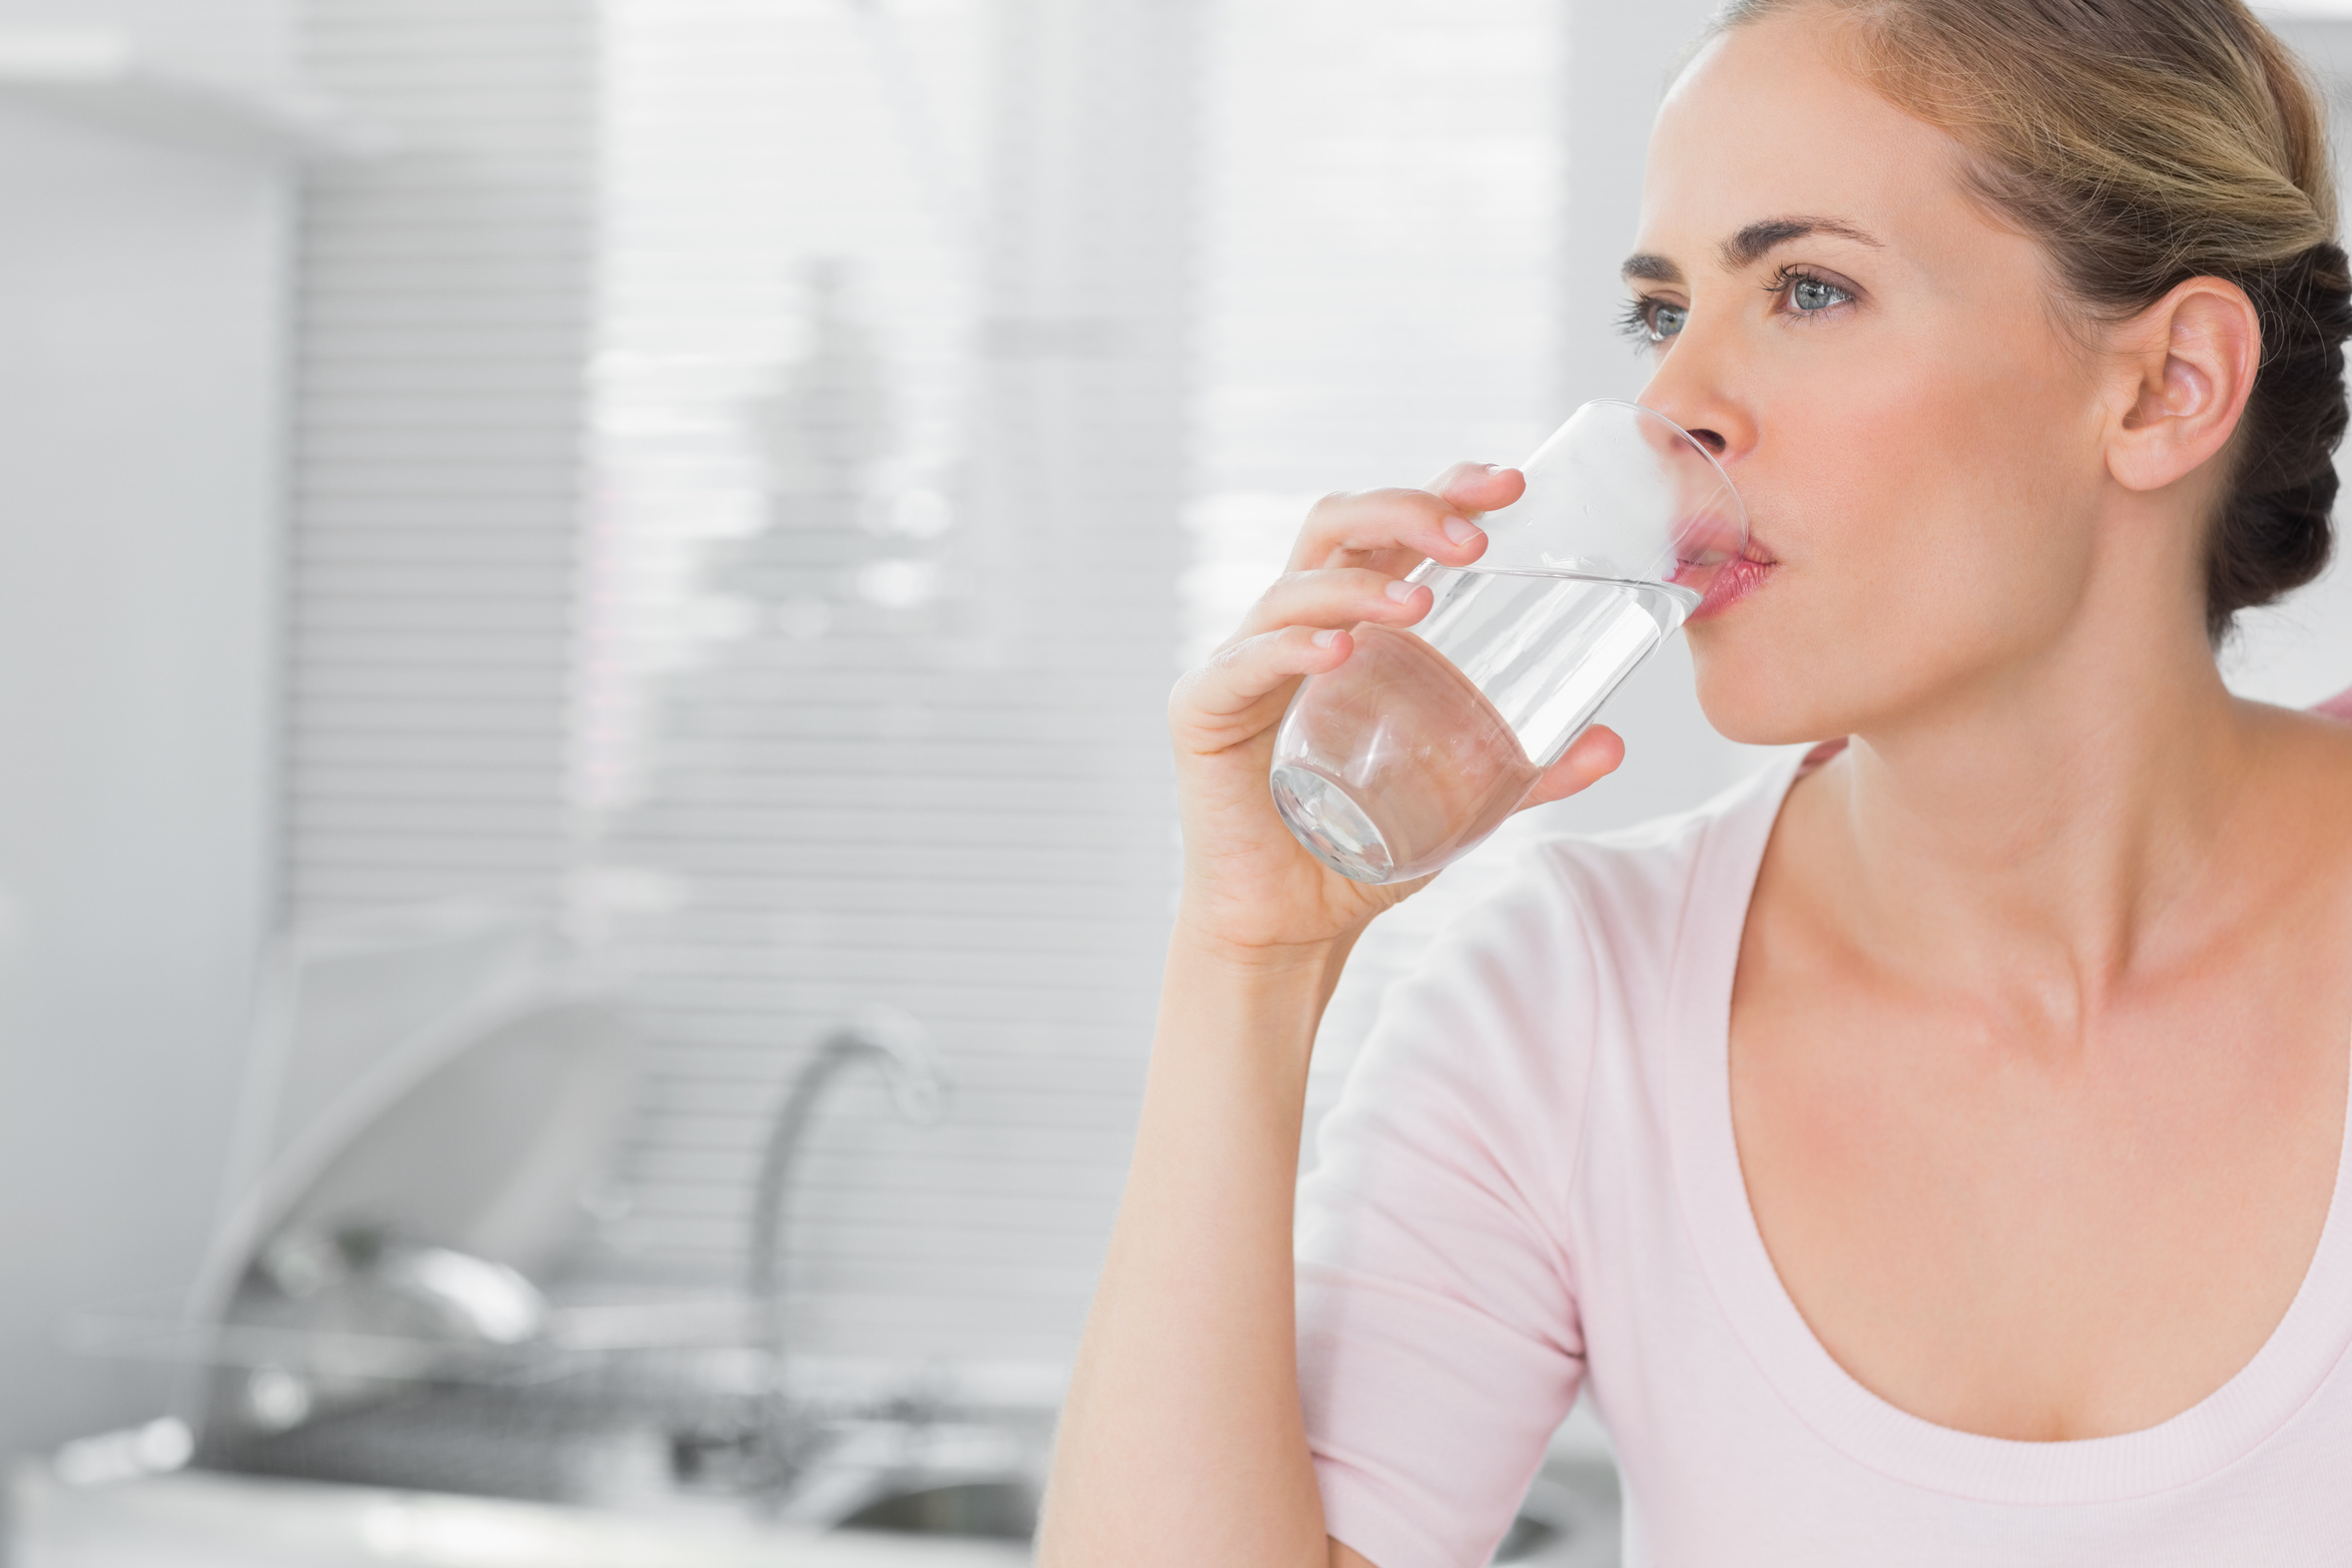 Pensive blond woman drinking water in her kitchen